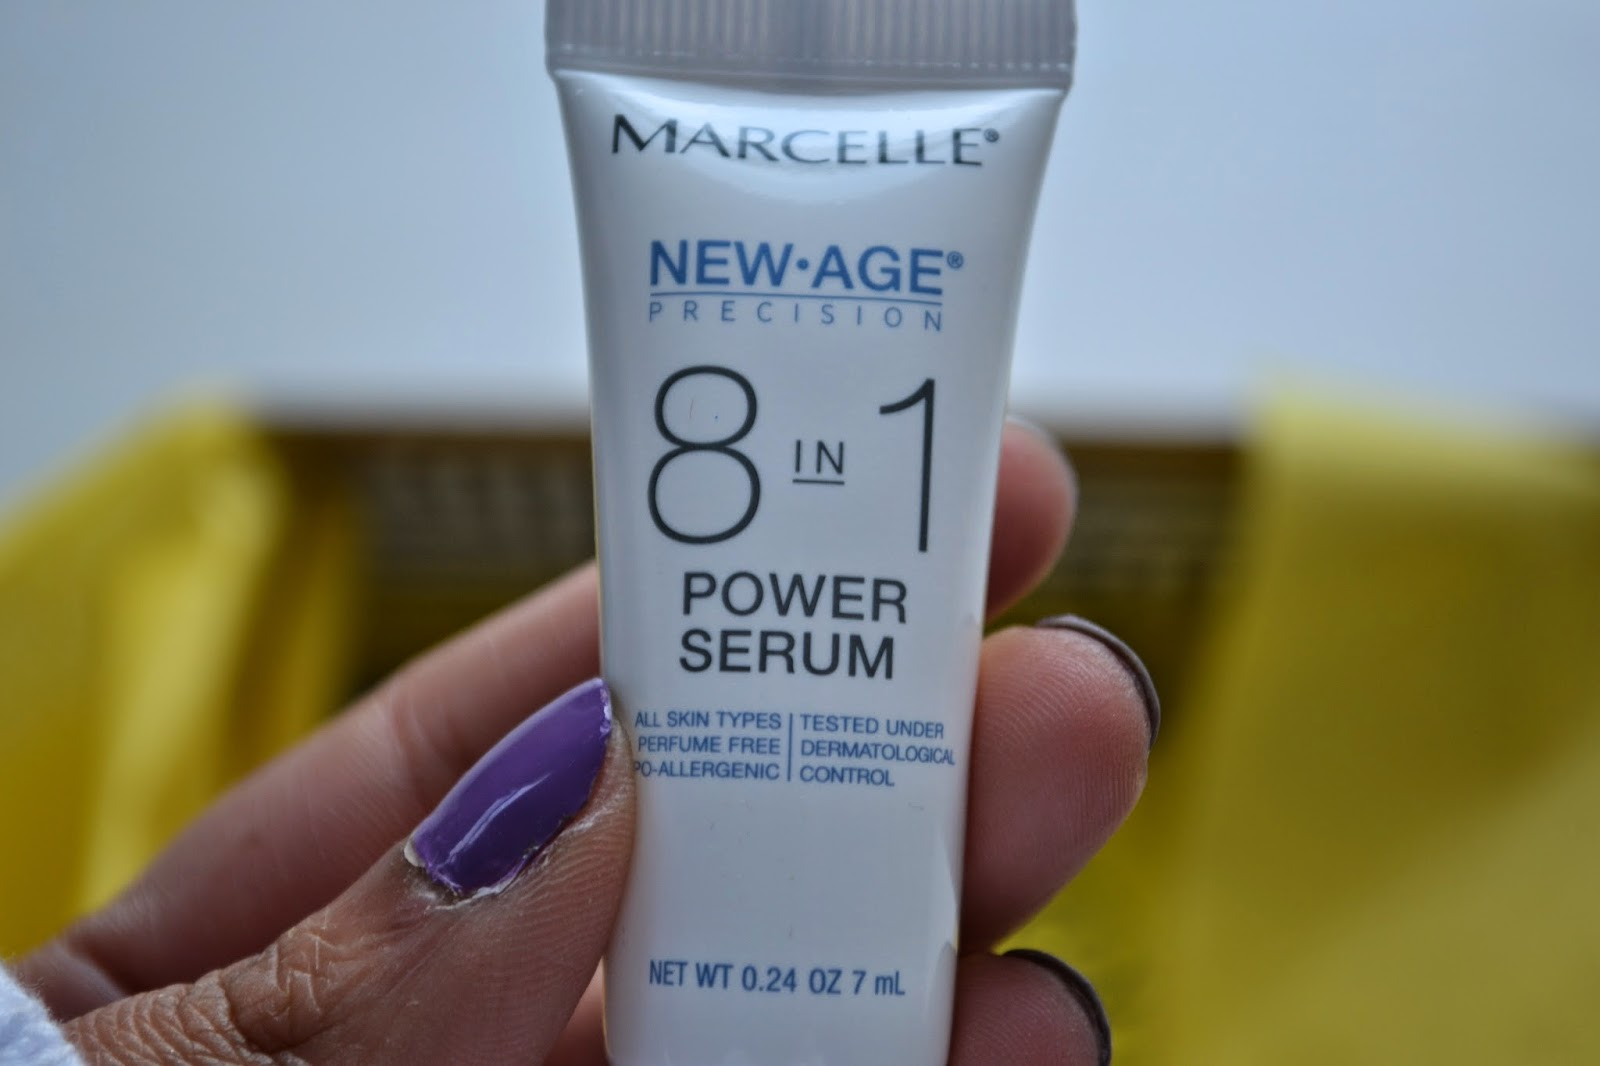 8 in 1 Power Serum